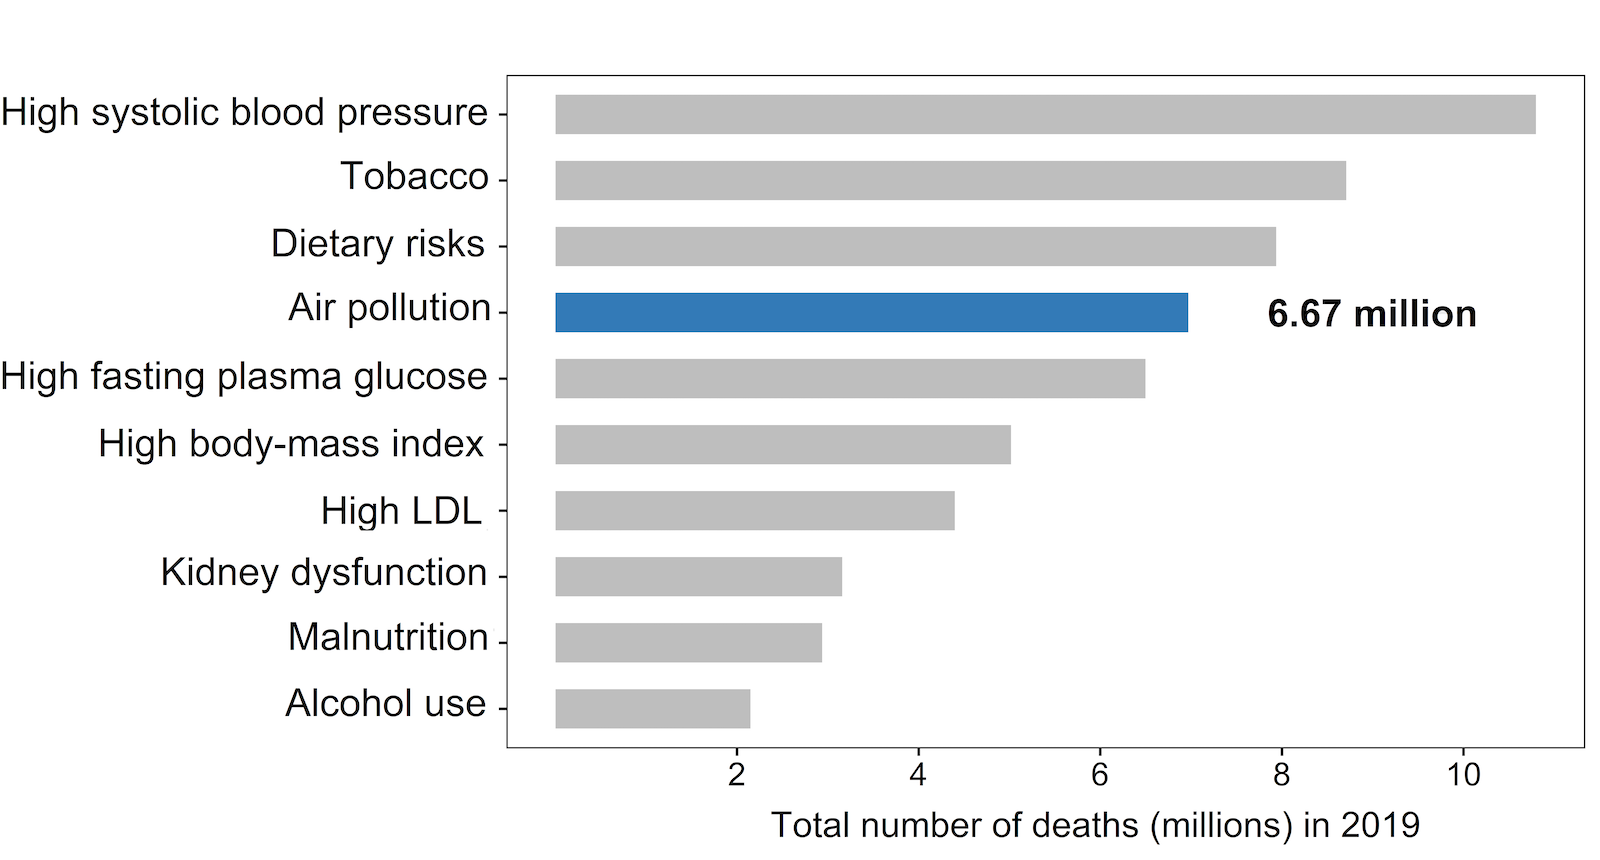 Figure N. Global ranking of risk factors by total deaths from all causes in 2019.